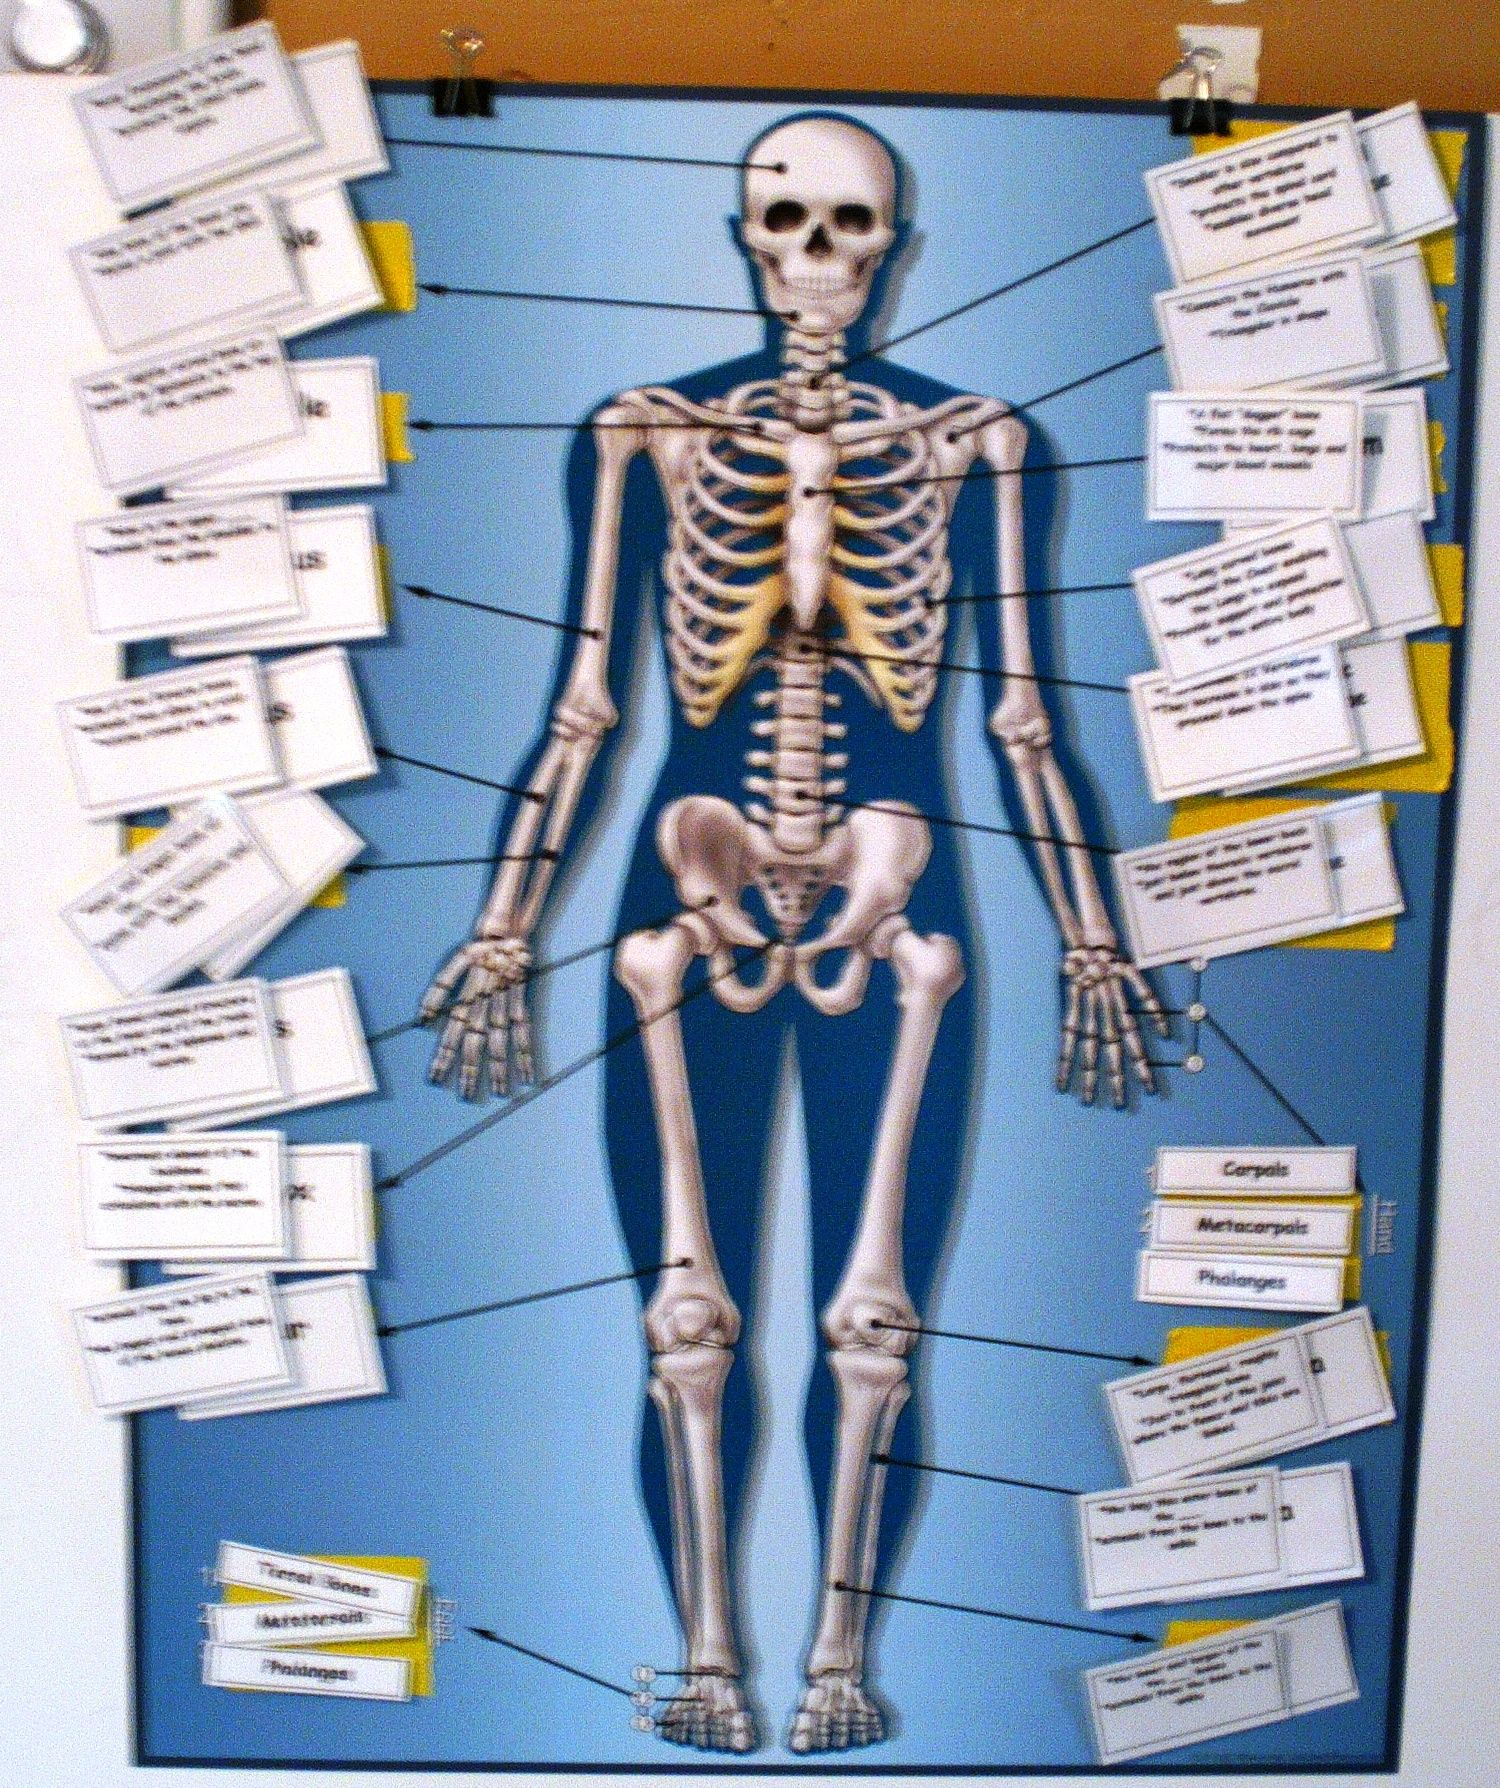 Skeletal Poster Altered With Manipulatives